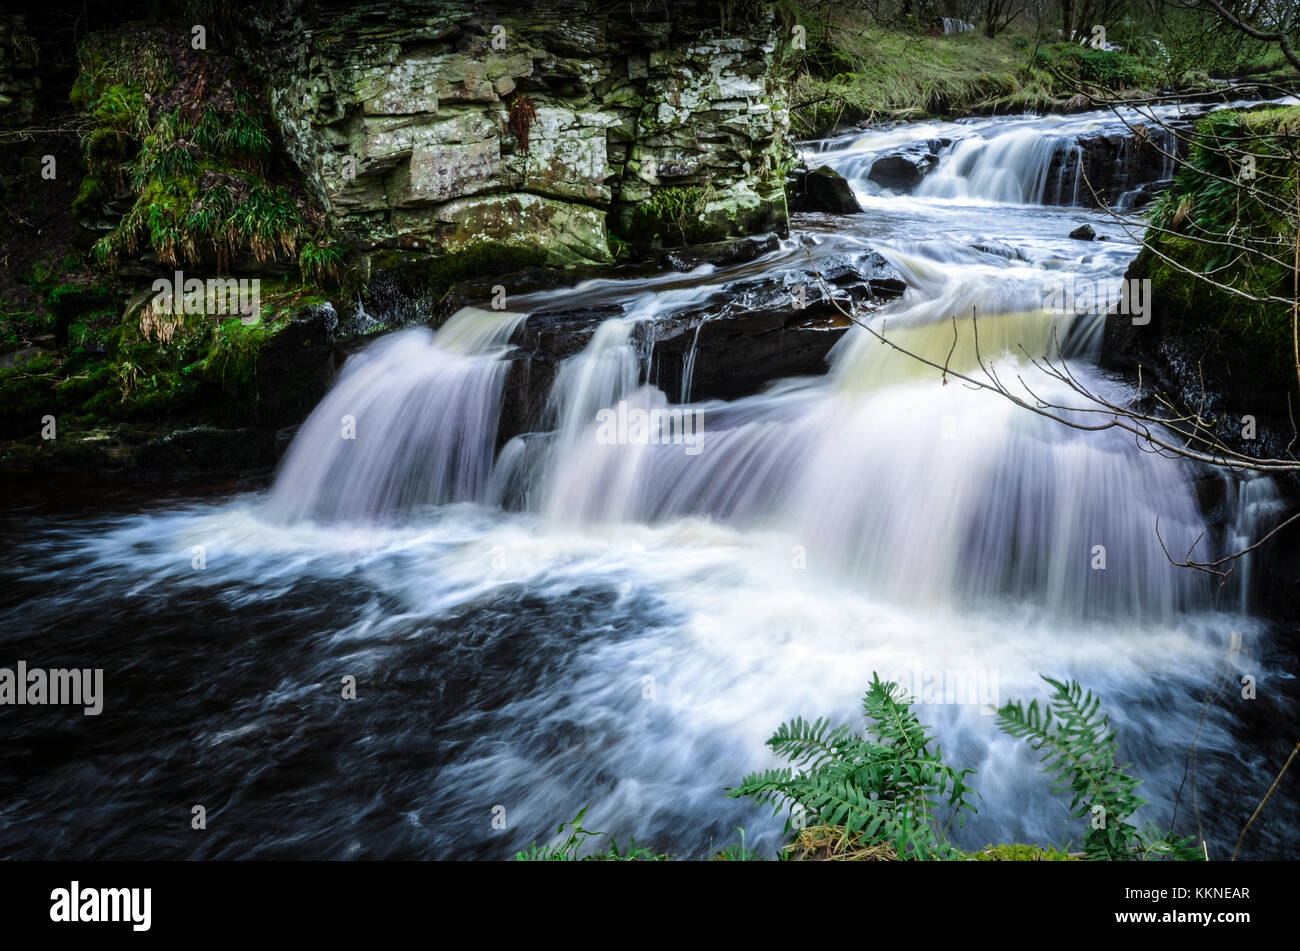 Spectacle E'e Falls - Stock Image